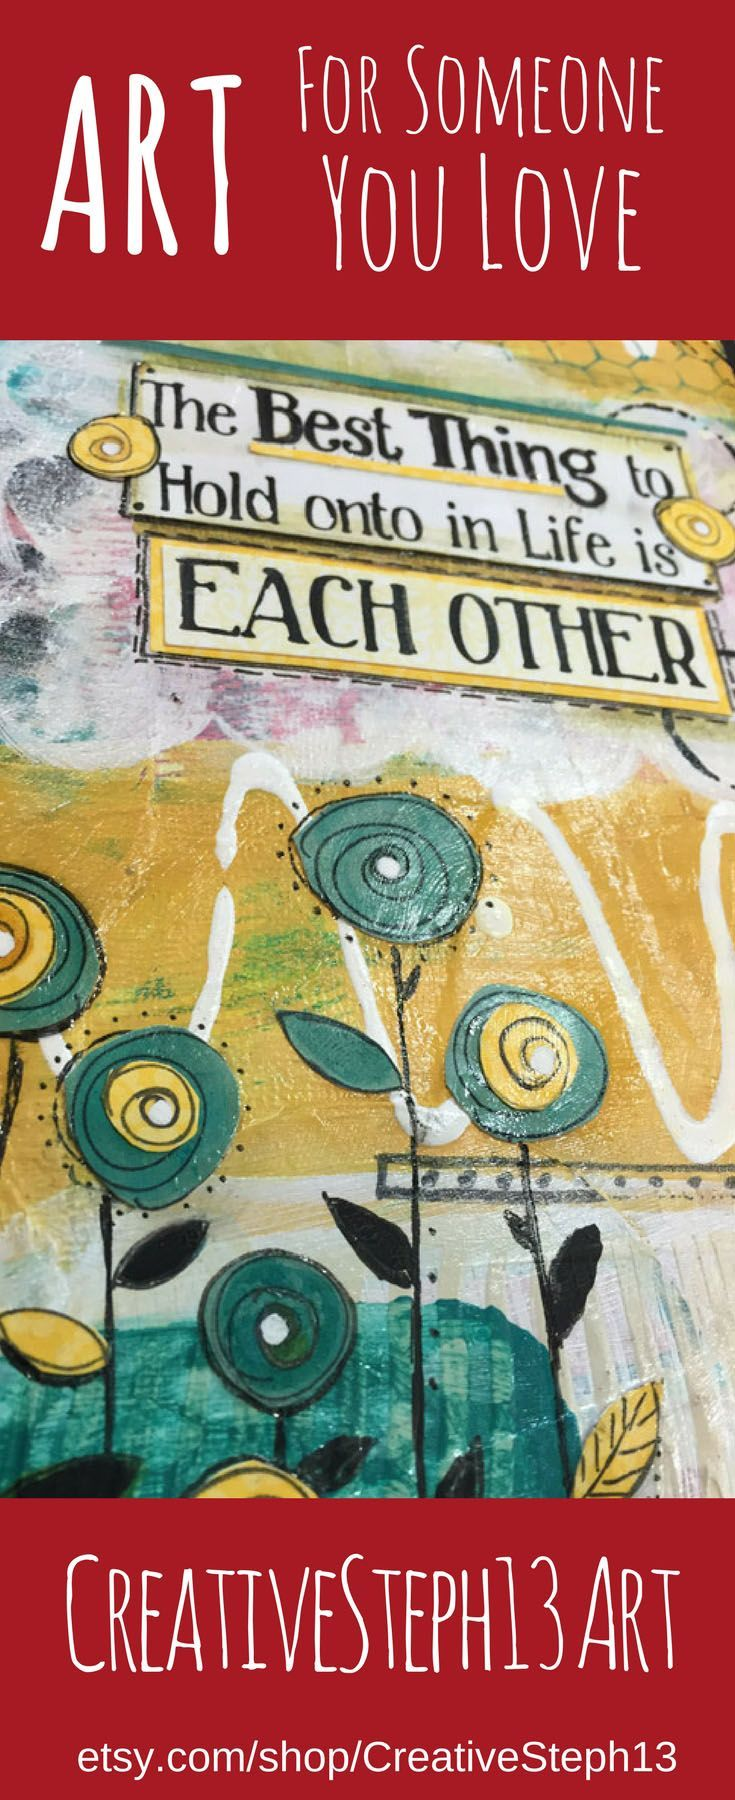 Adt Quote The Best Thing To Hold Onto Is Each Other Art Print Love Quote .